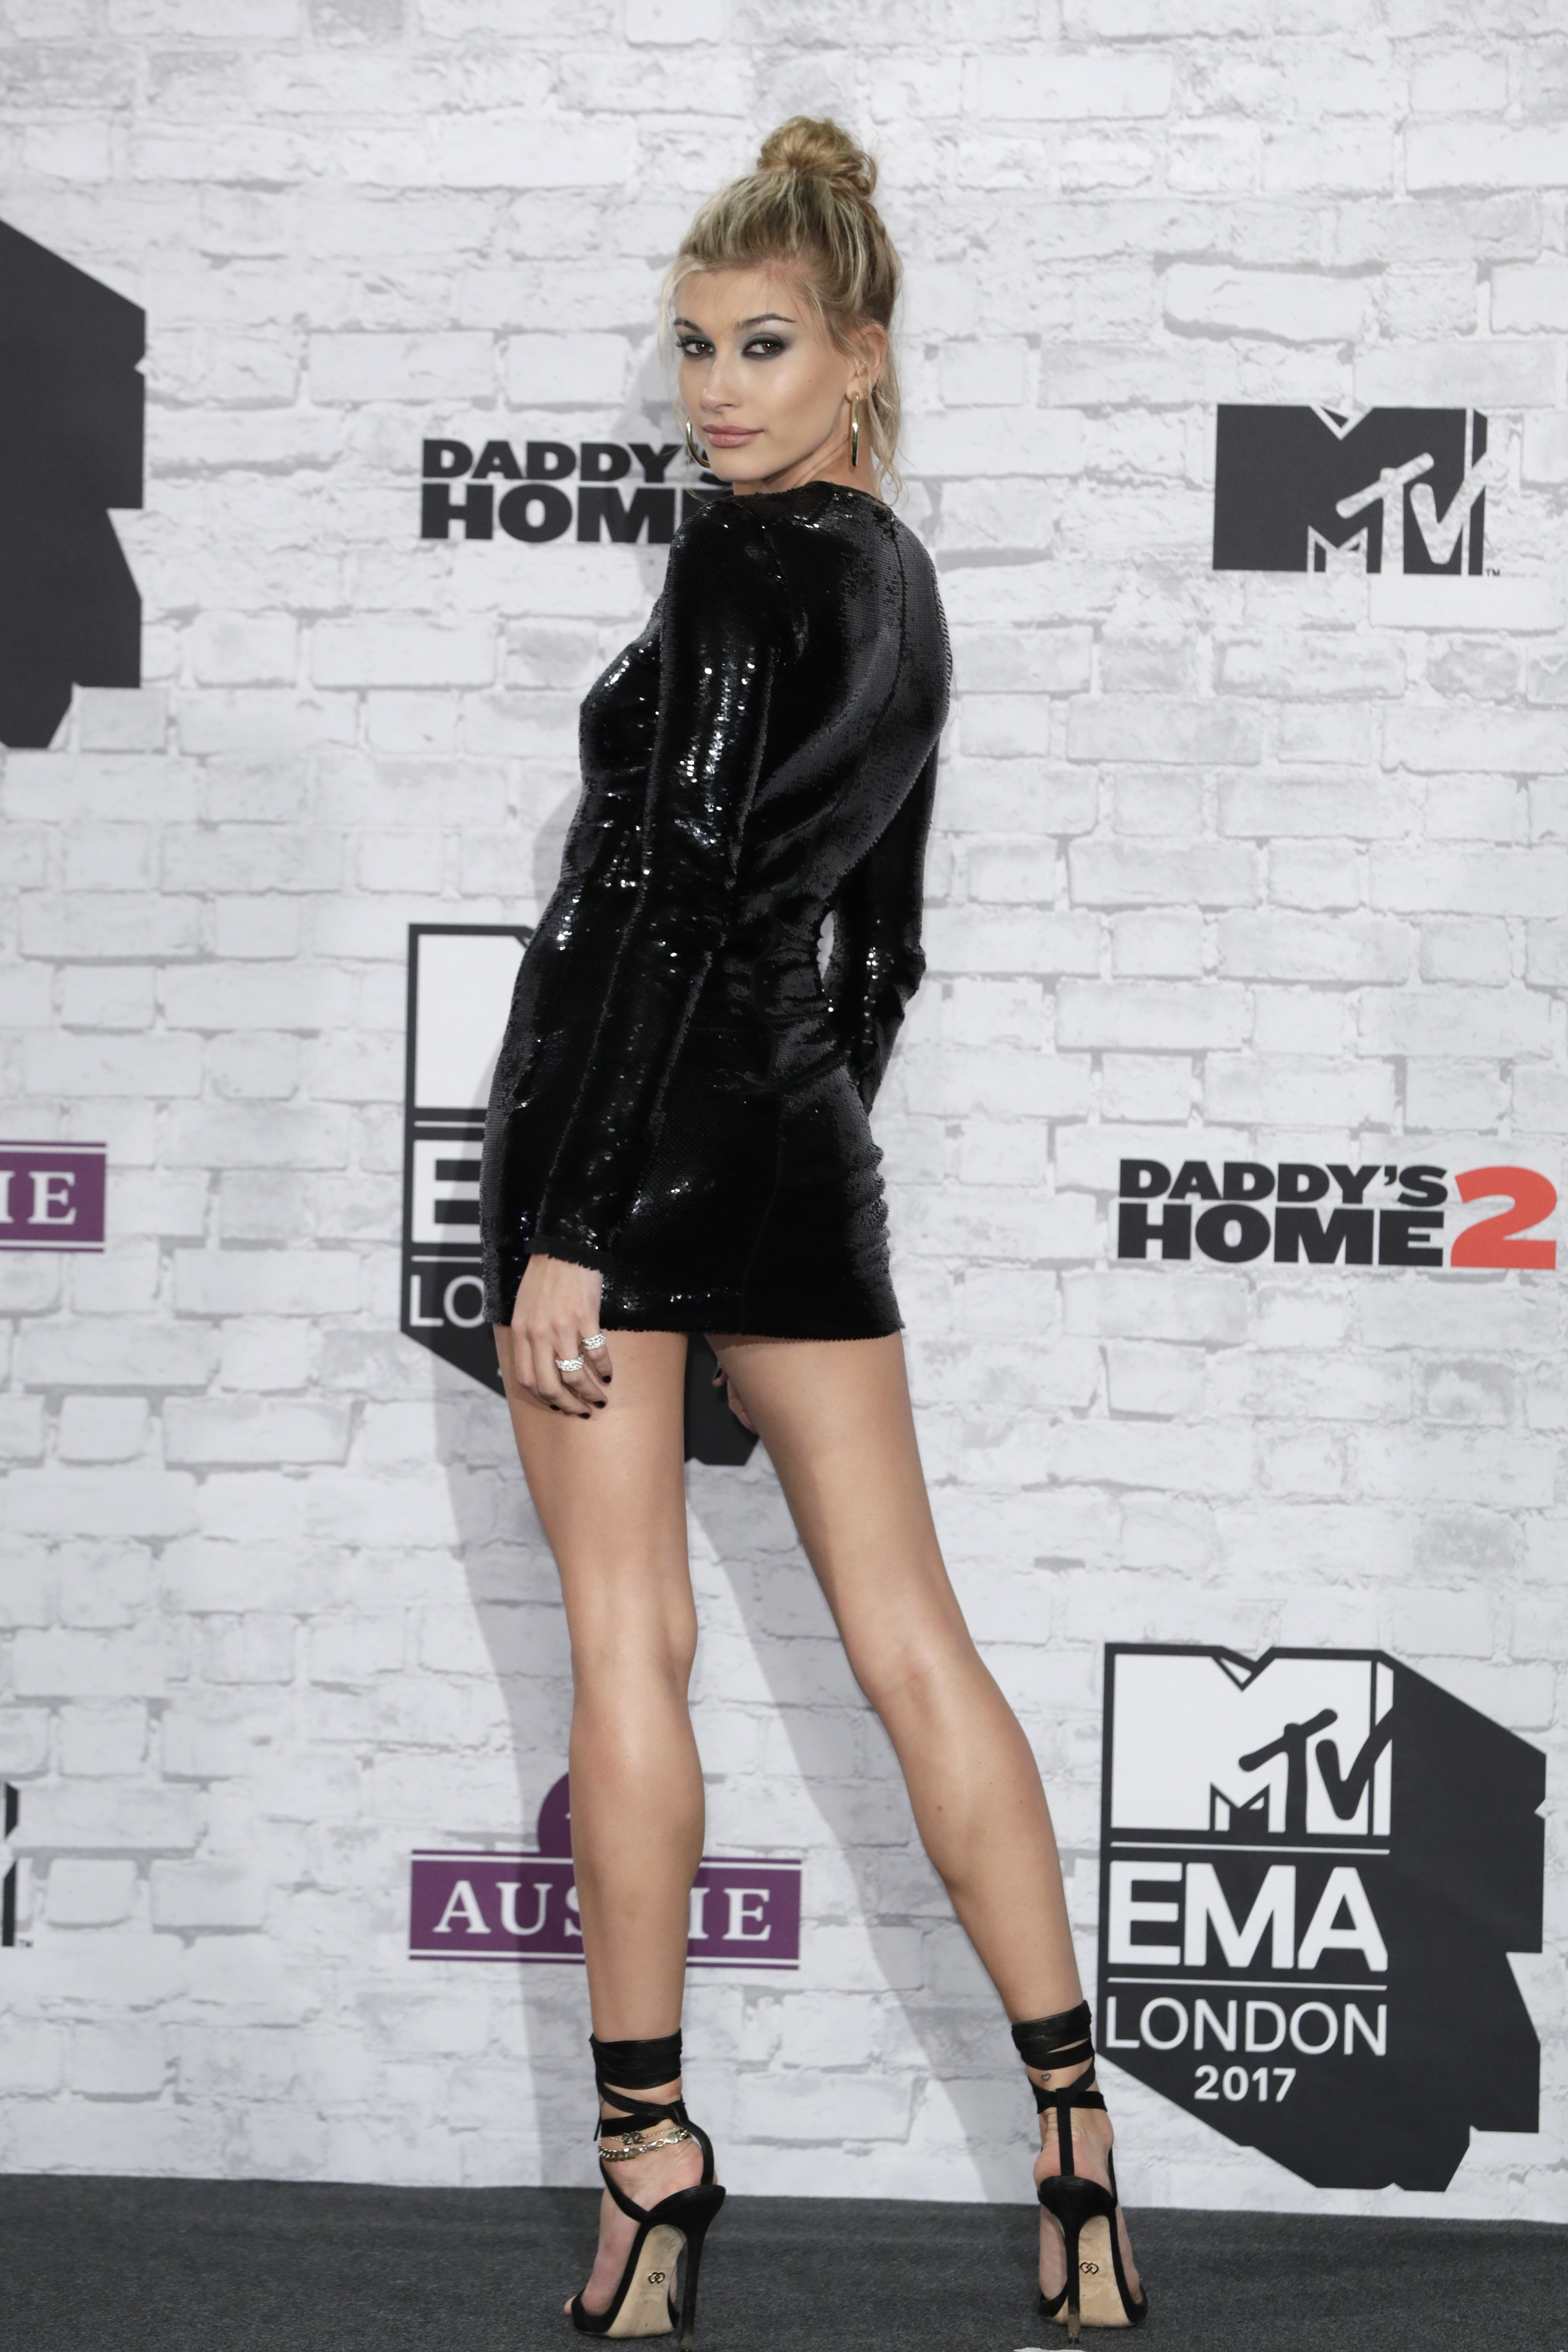 Hailey Baldwin knows how to showcase her assets, revealing a killer pair of legs on the red carpet at last night's MTV EMA Awards.<br /> <br /> A sparkling, black mini-dress from Tom Ford was the perfect complement to the Insta-star's long limbs.<br /> <br /> Paired with a pair of black strappy stilettos, hoop earrings and messy updo, the daughter of actor Steven Baldwin served up a serious dose of old school glamour reminiscent of the high-voltage glamour looks of the original '90s supermodels.<br /> <br /> Follow Baldwin's lead this summer and turn up the heat by getting your pins picture perfect. <br /> <br /> We can't buy Baldwin's natural height but we can fill our beauty bags with the tanning products that help us fake her leggy look.<br /> <br /> From long lasting-tanners, exfoliators and wash-off glows we have rounded up ten of the best tanning products to give you a supermodel-worthy glow this Summer.